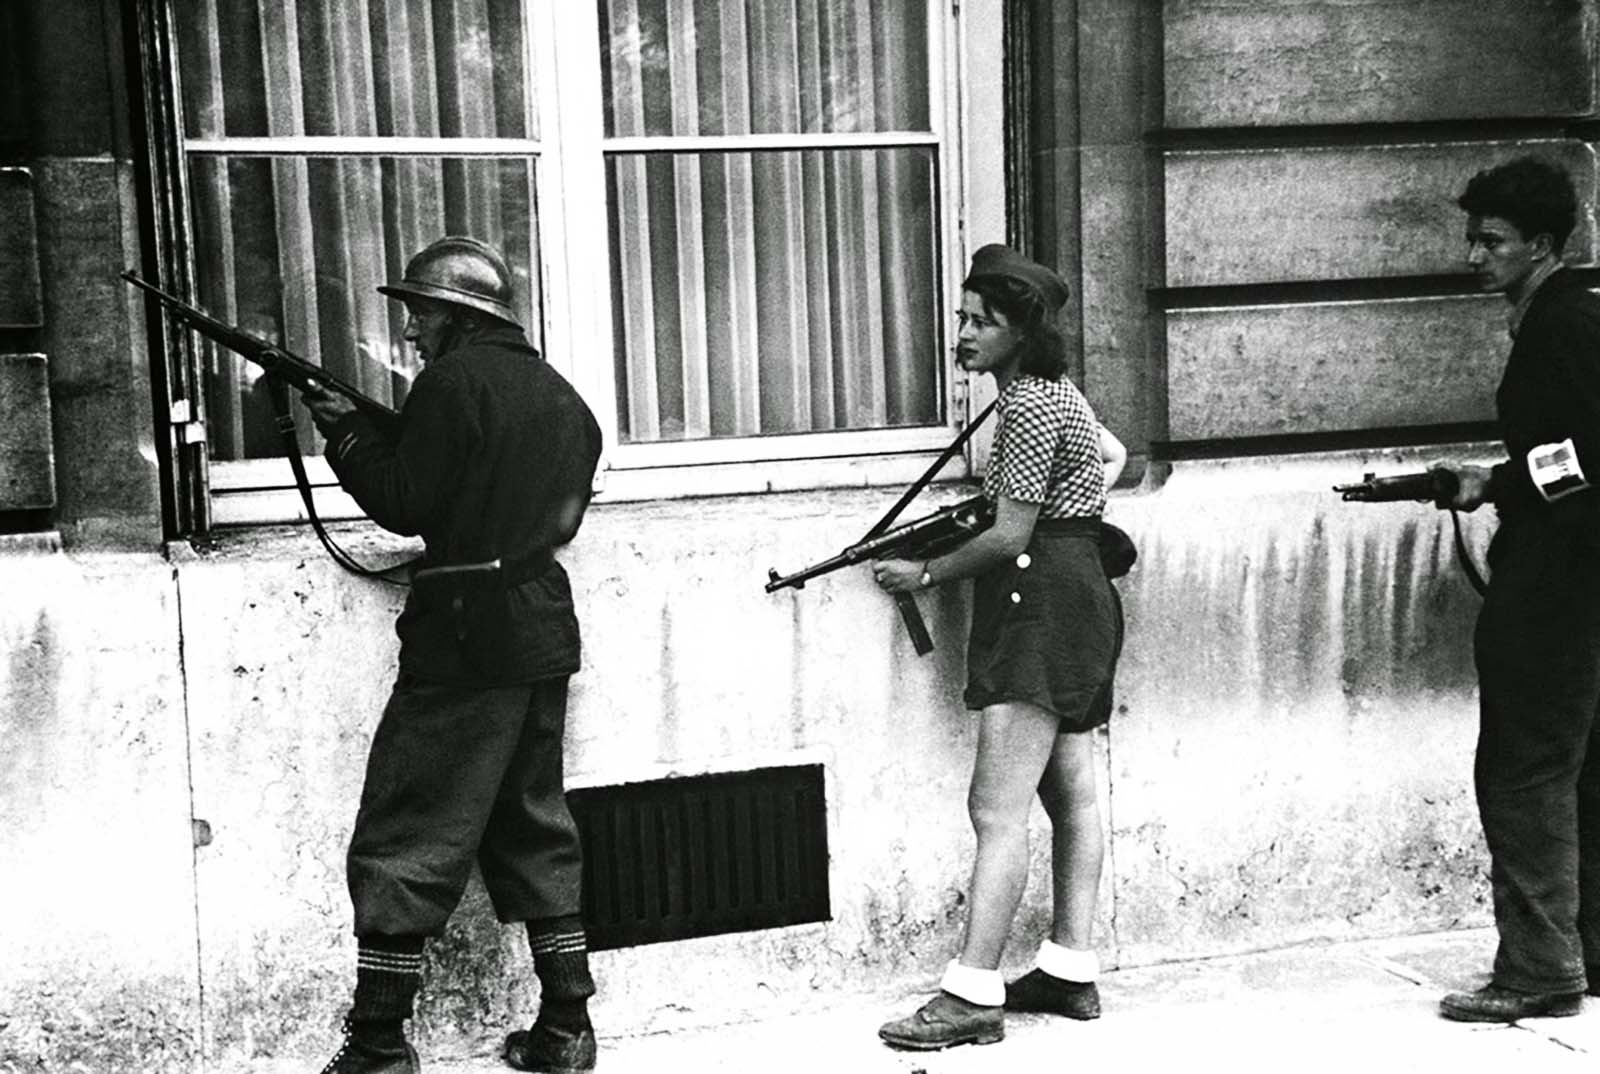 Simone is pictured taking cover during the liberation of Paris in August 1944.